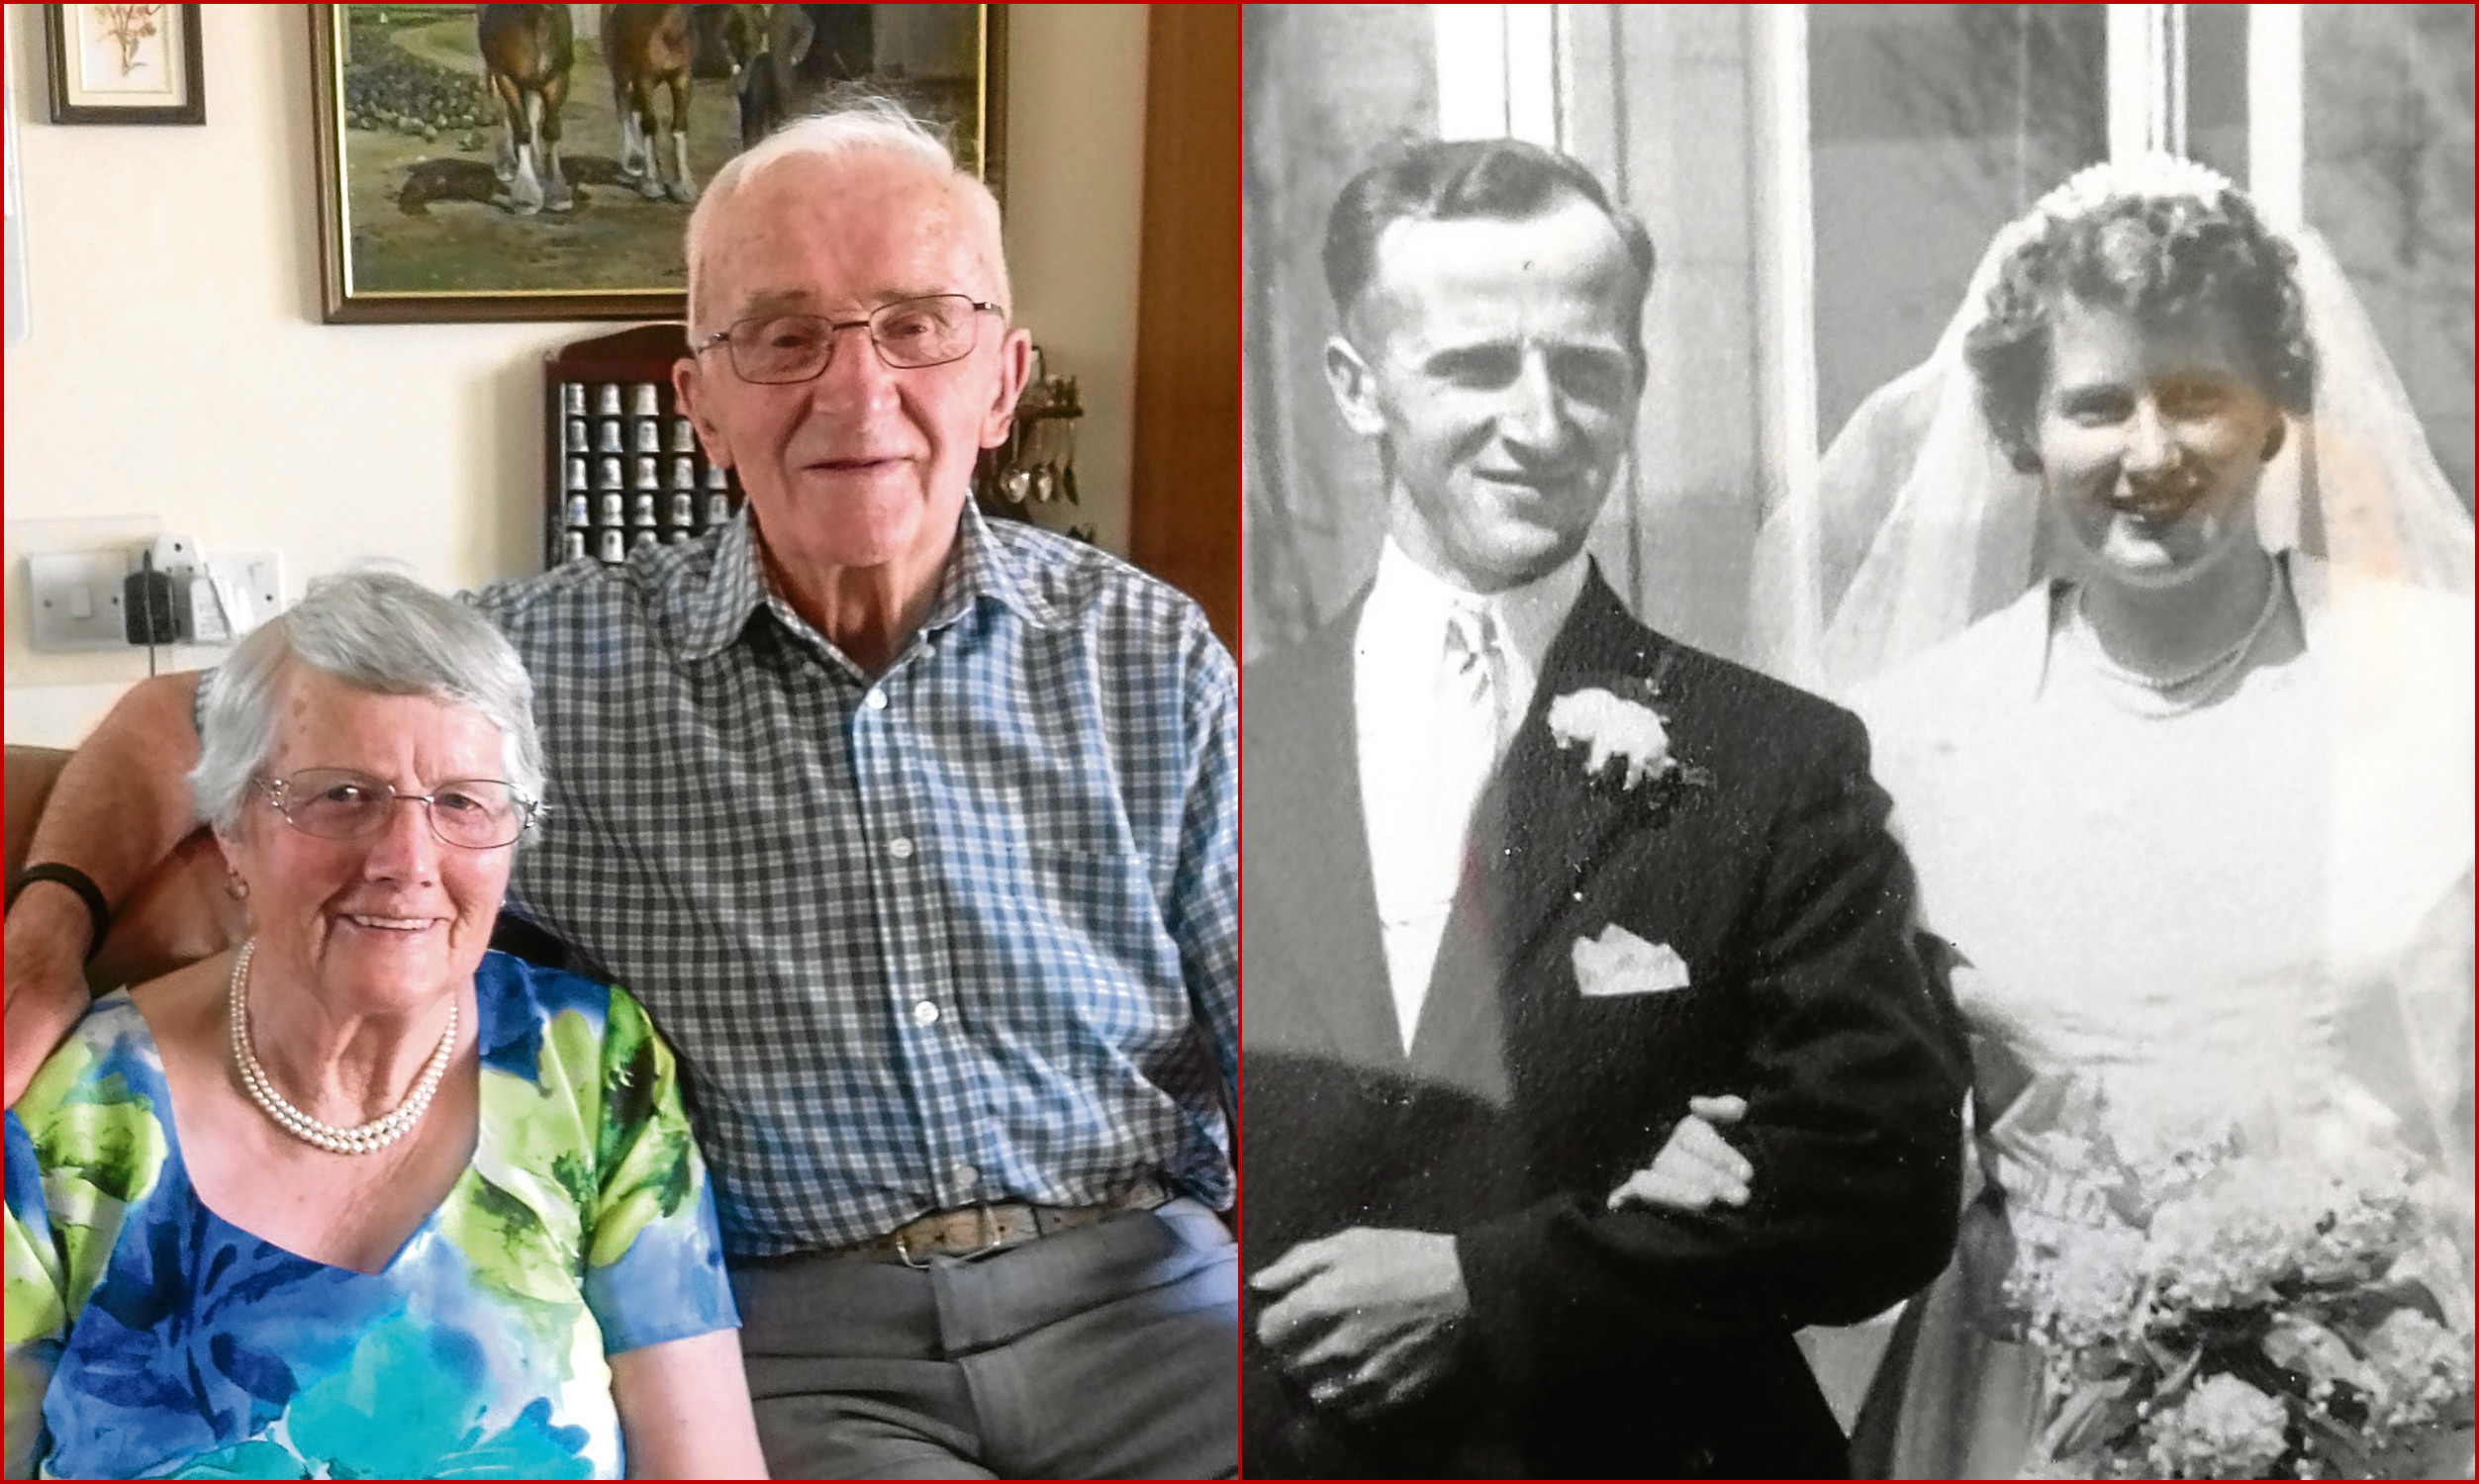 Margaret and Doug Thomson pictured at home and on their wedding day in 1957.